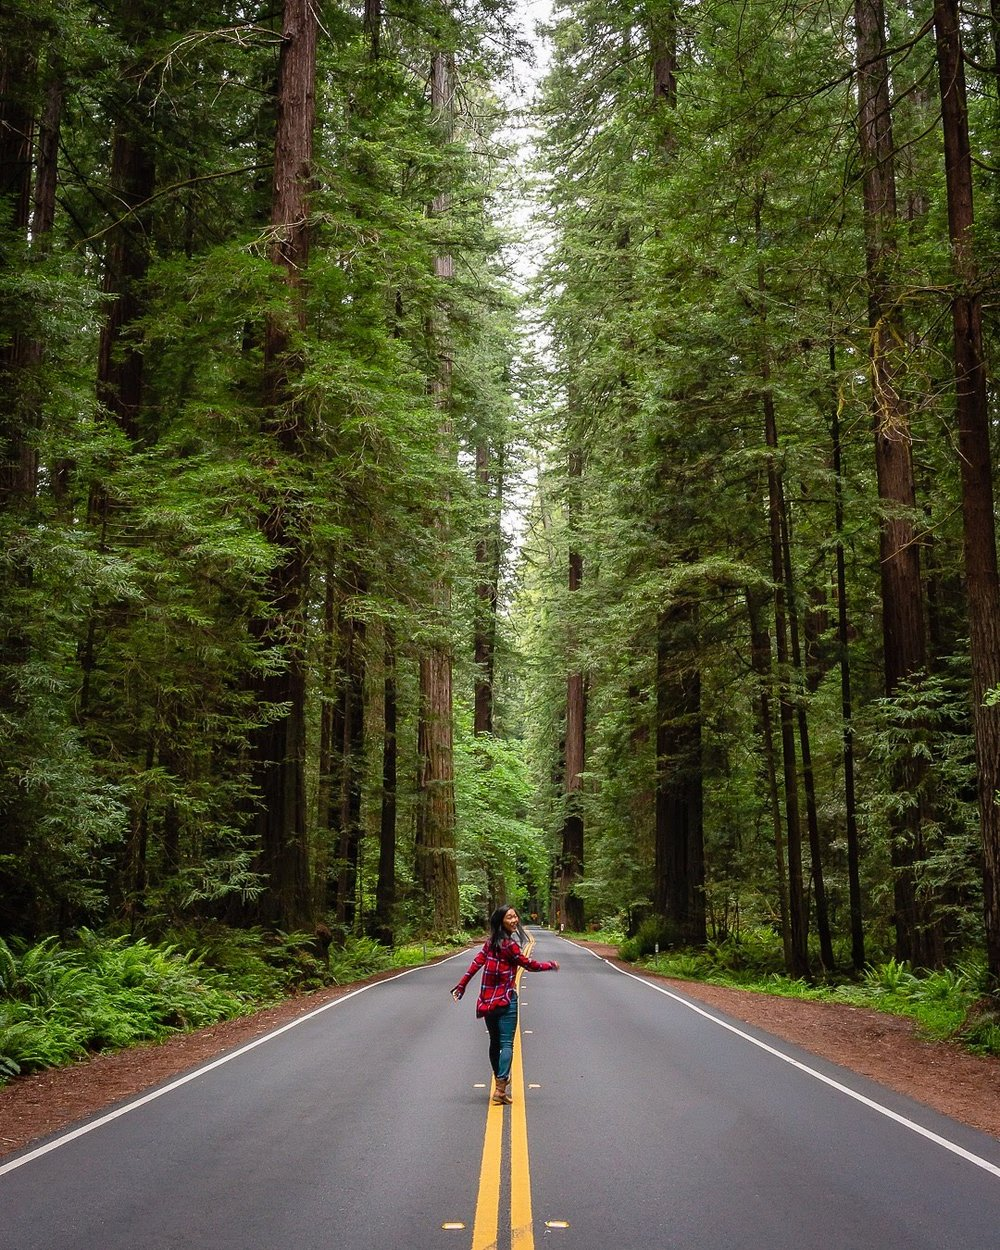 Northern California Redwoods: 3 Day Road Trip Itinerary ... on best of the redwood coast map, giant coastal redwoods, redwoods ca map, redwood highway map, giant forest map, giant redwood national park map, redwood forest map,